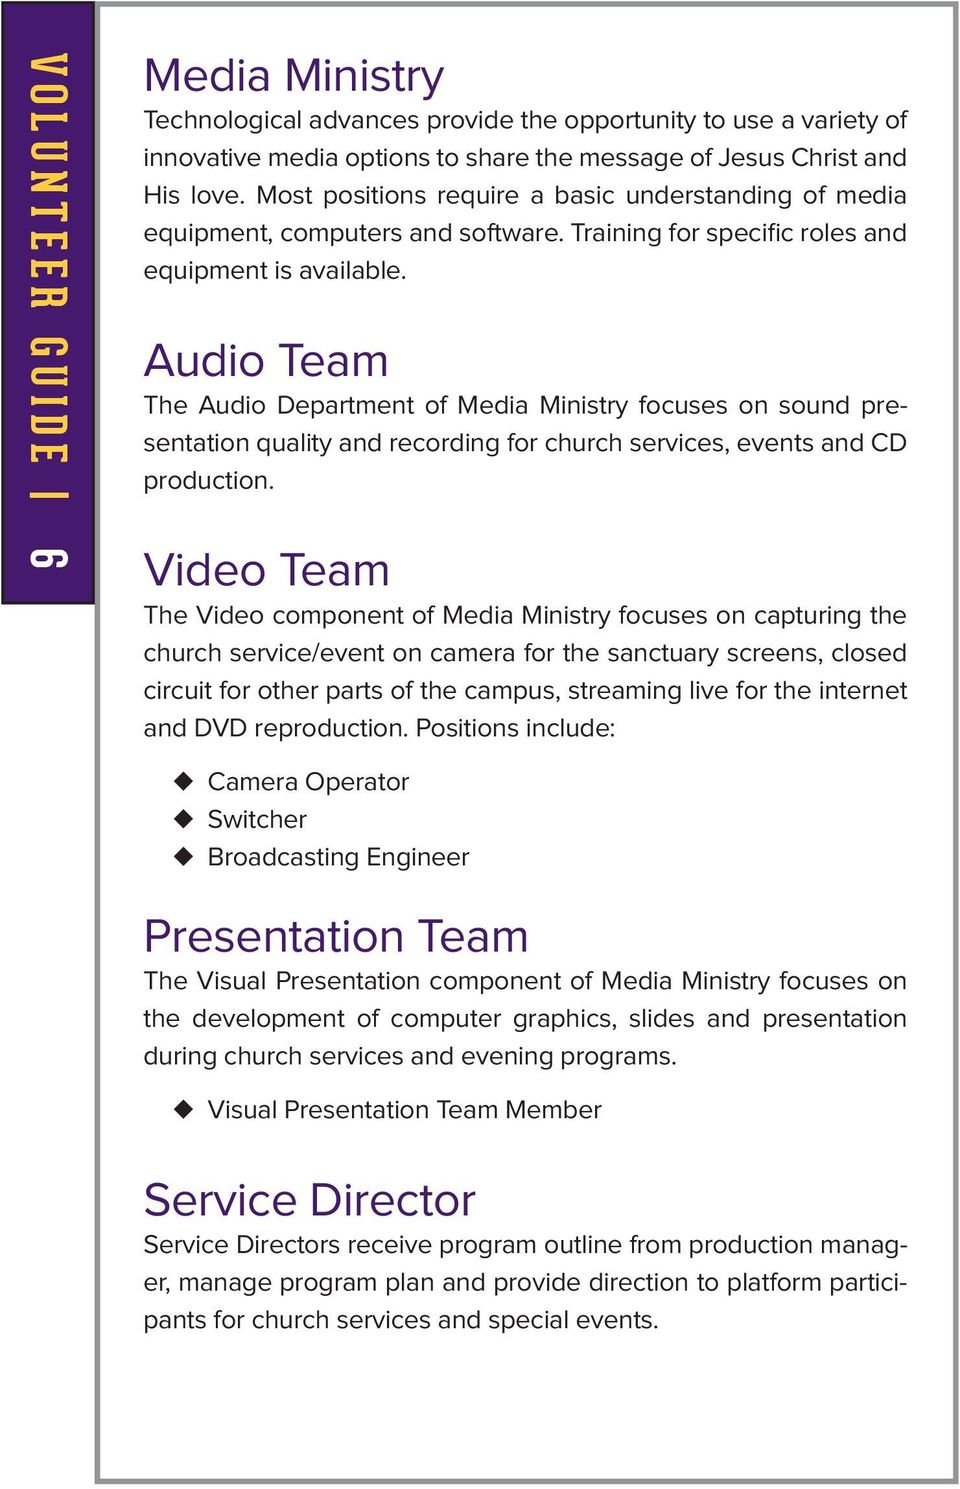 Audio Team The Audio Department of Media Ministry focuses on sound presentation quality and recording for church services, events and CD production.